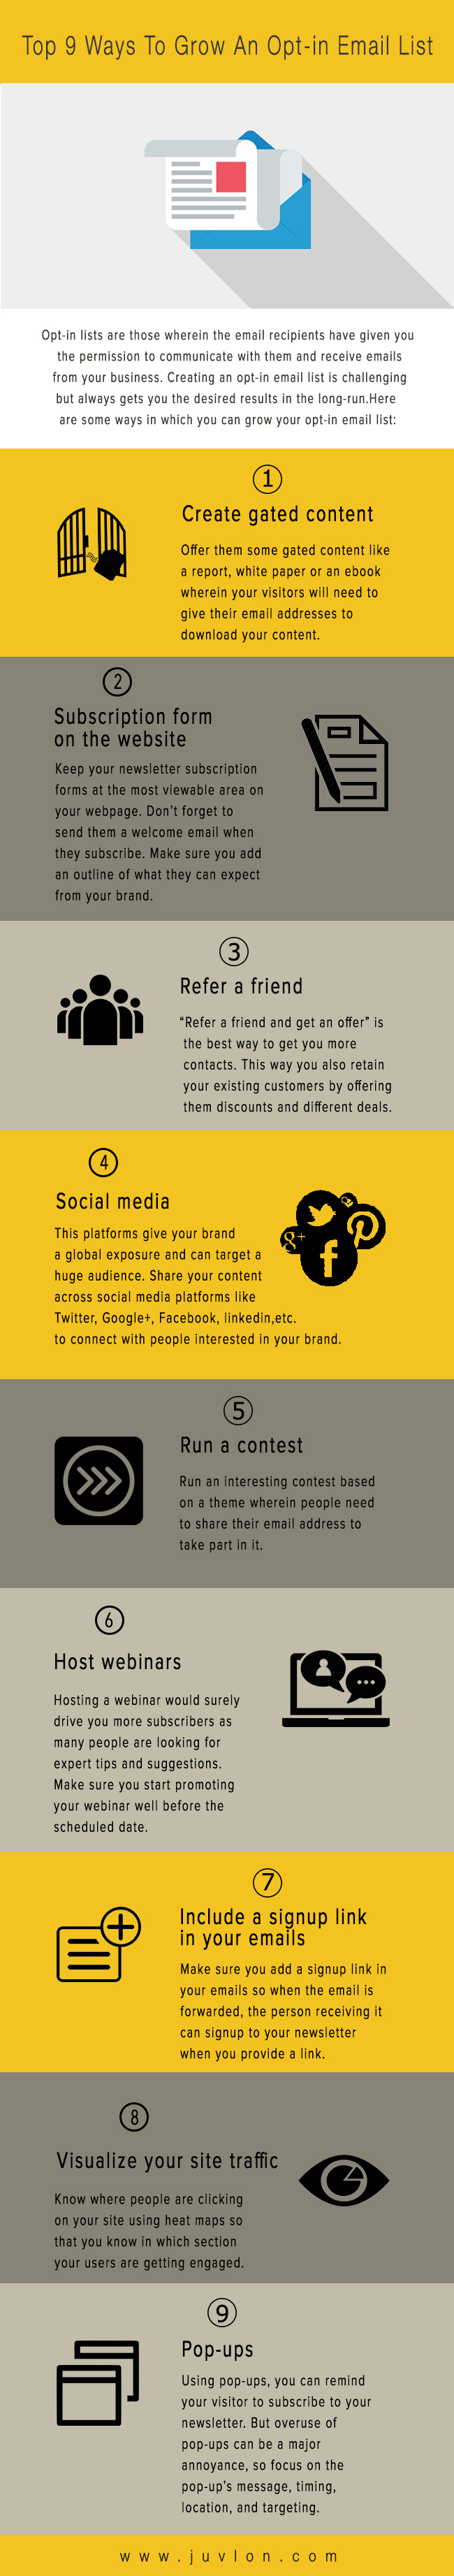 Infographic- Ways to grow an op-in email list